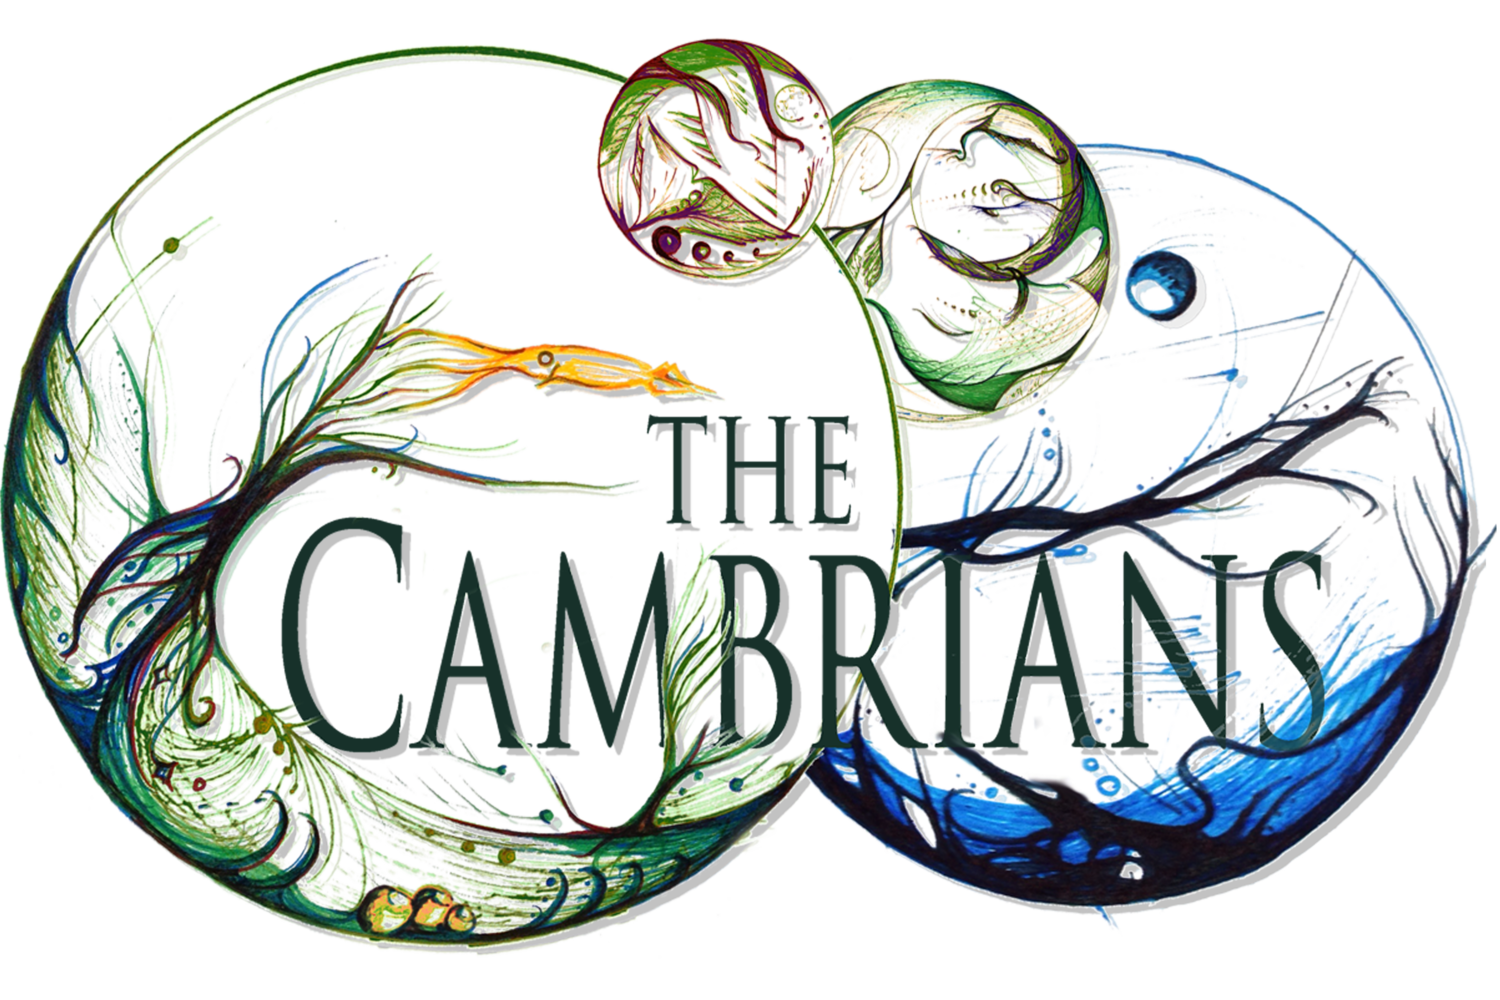 The Cambrians